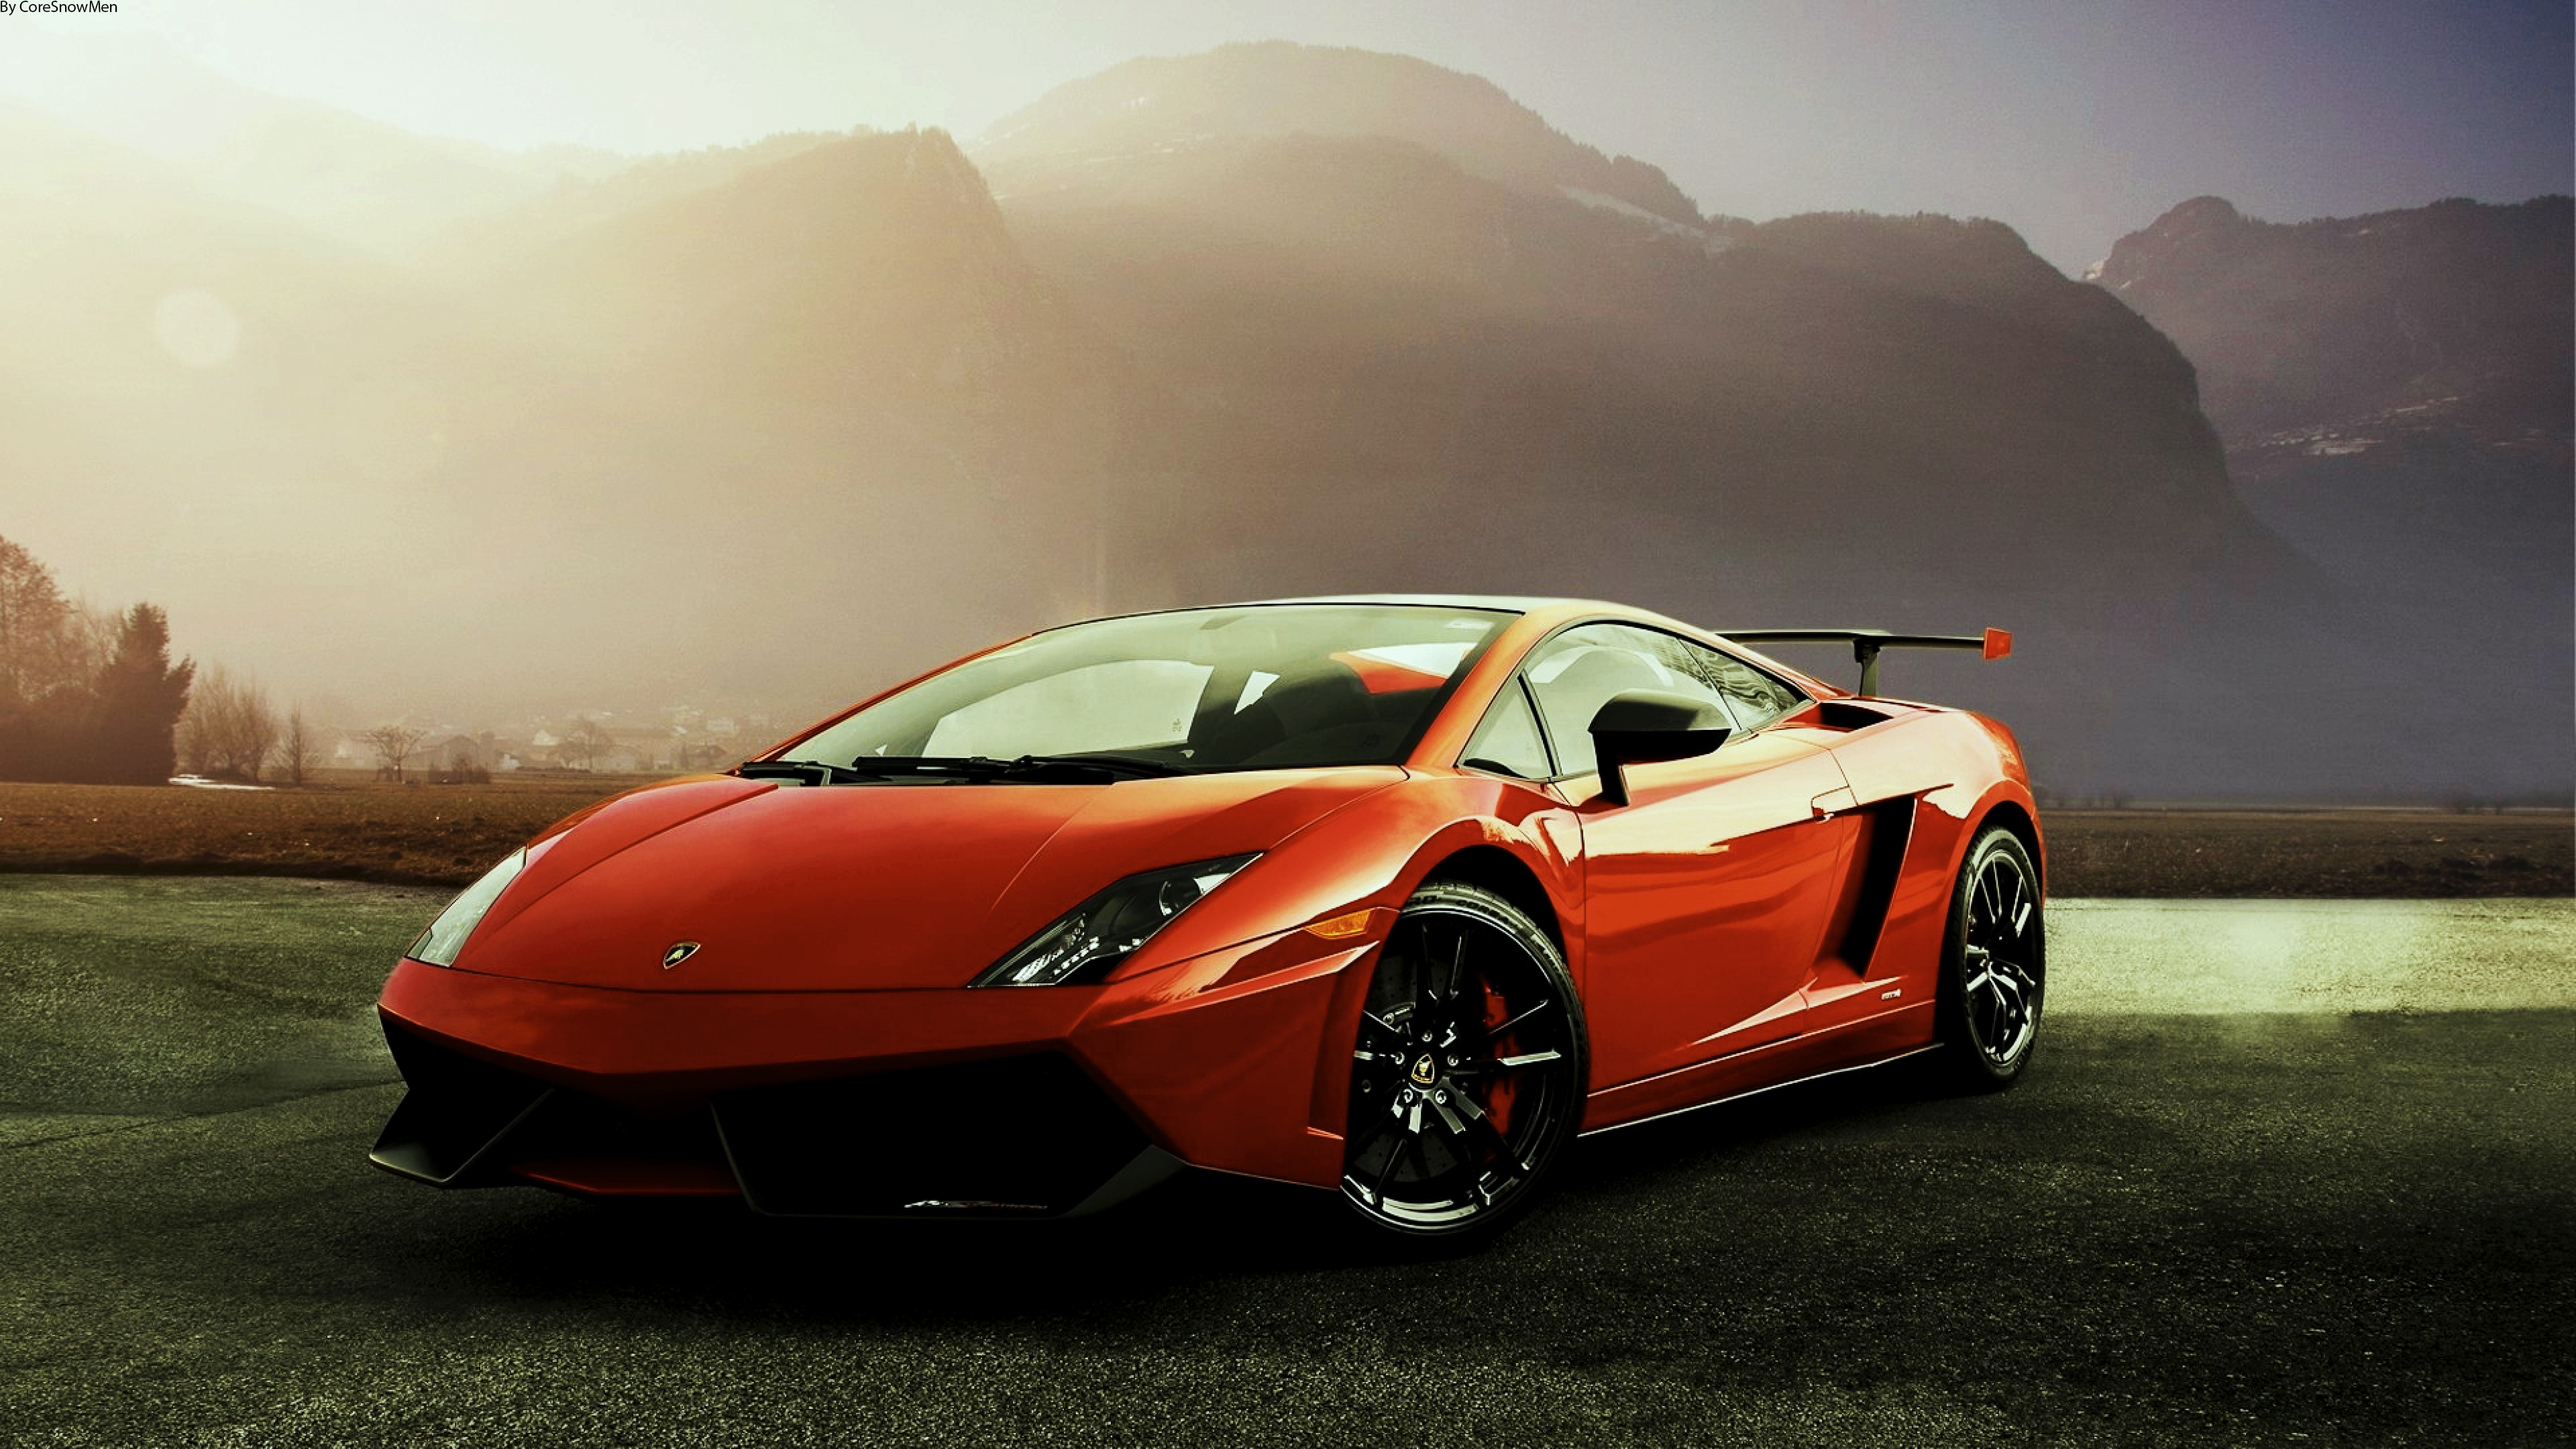 Lamborghini Gallardo Wallpapers Pictures Images